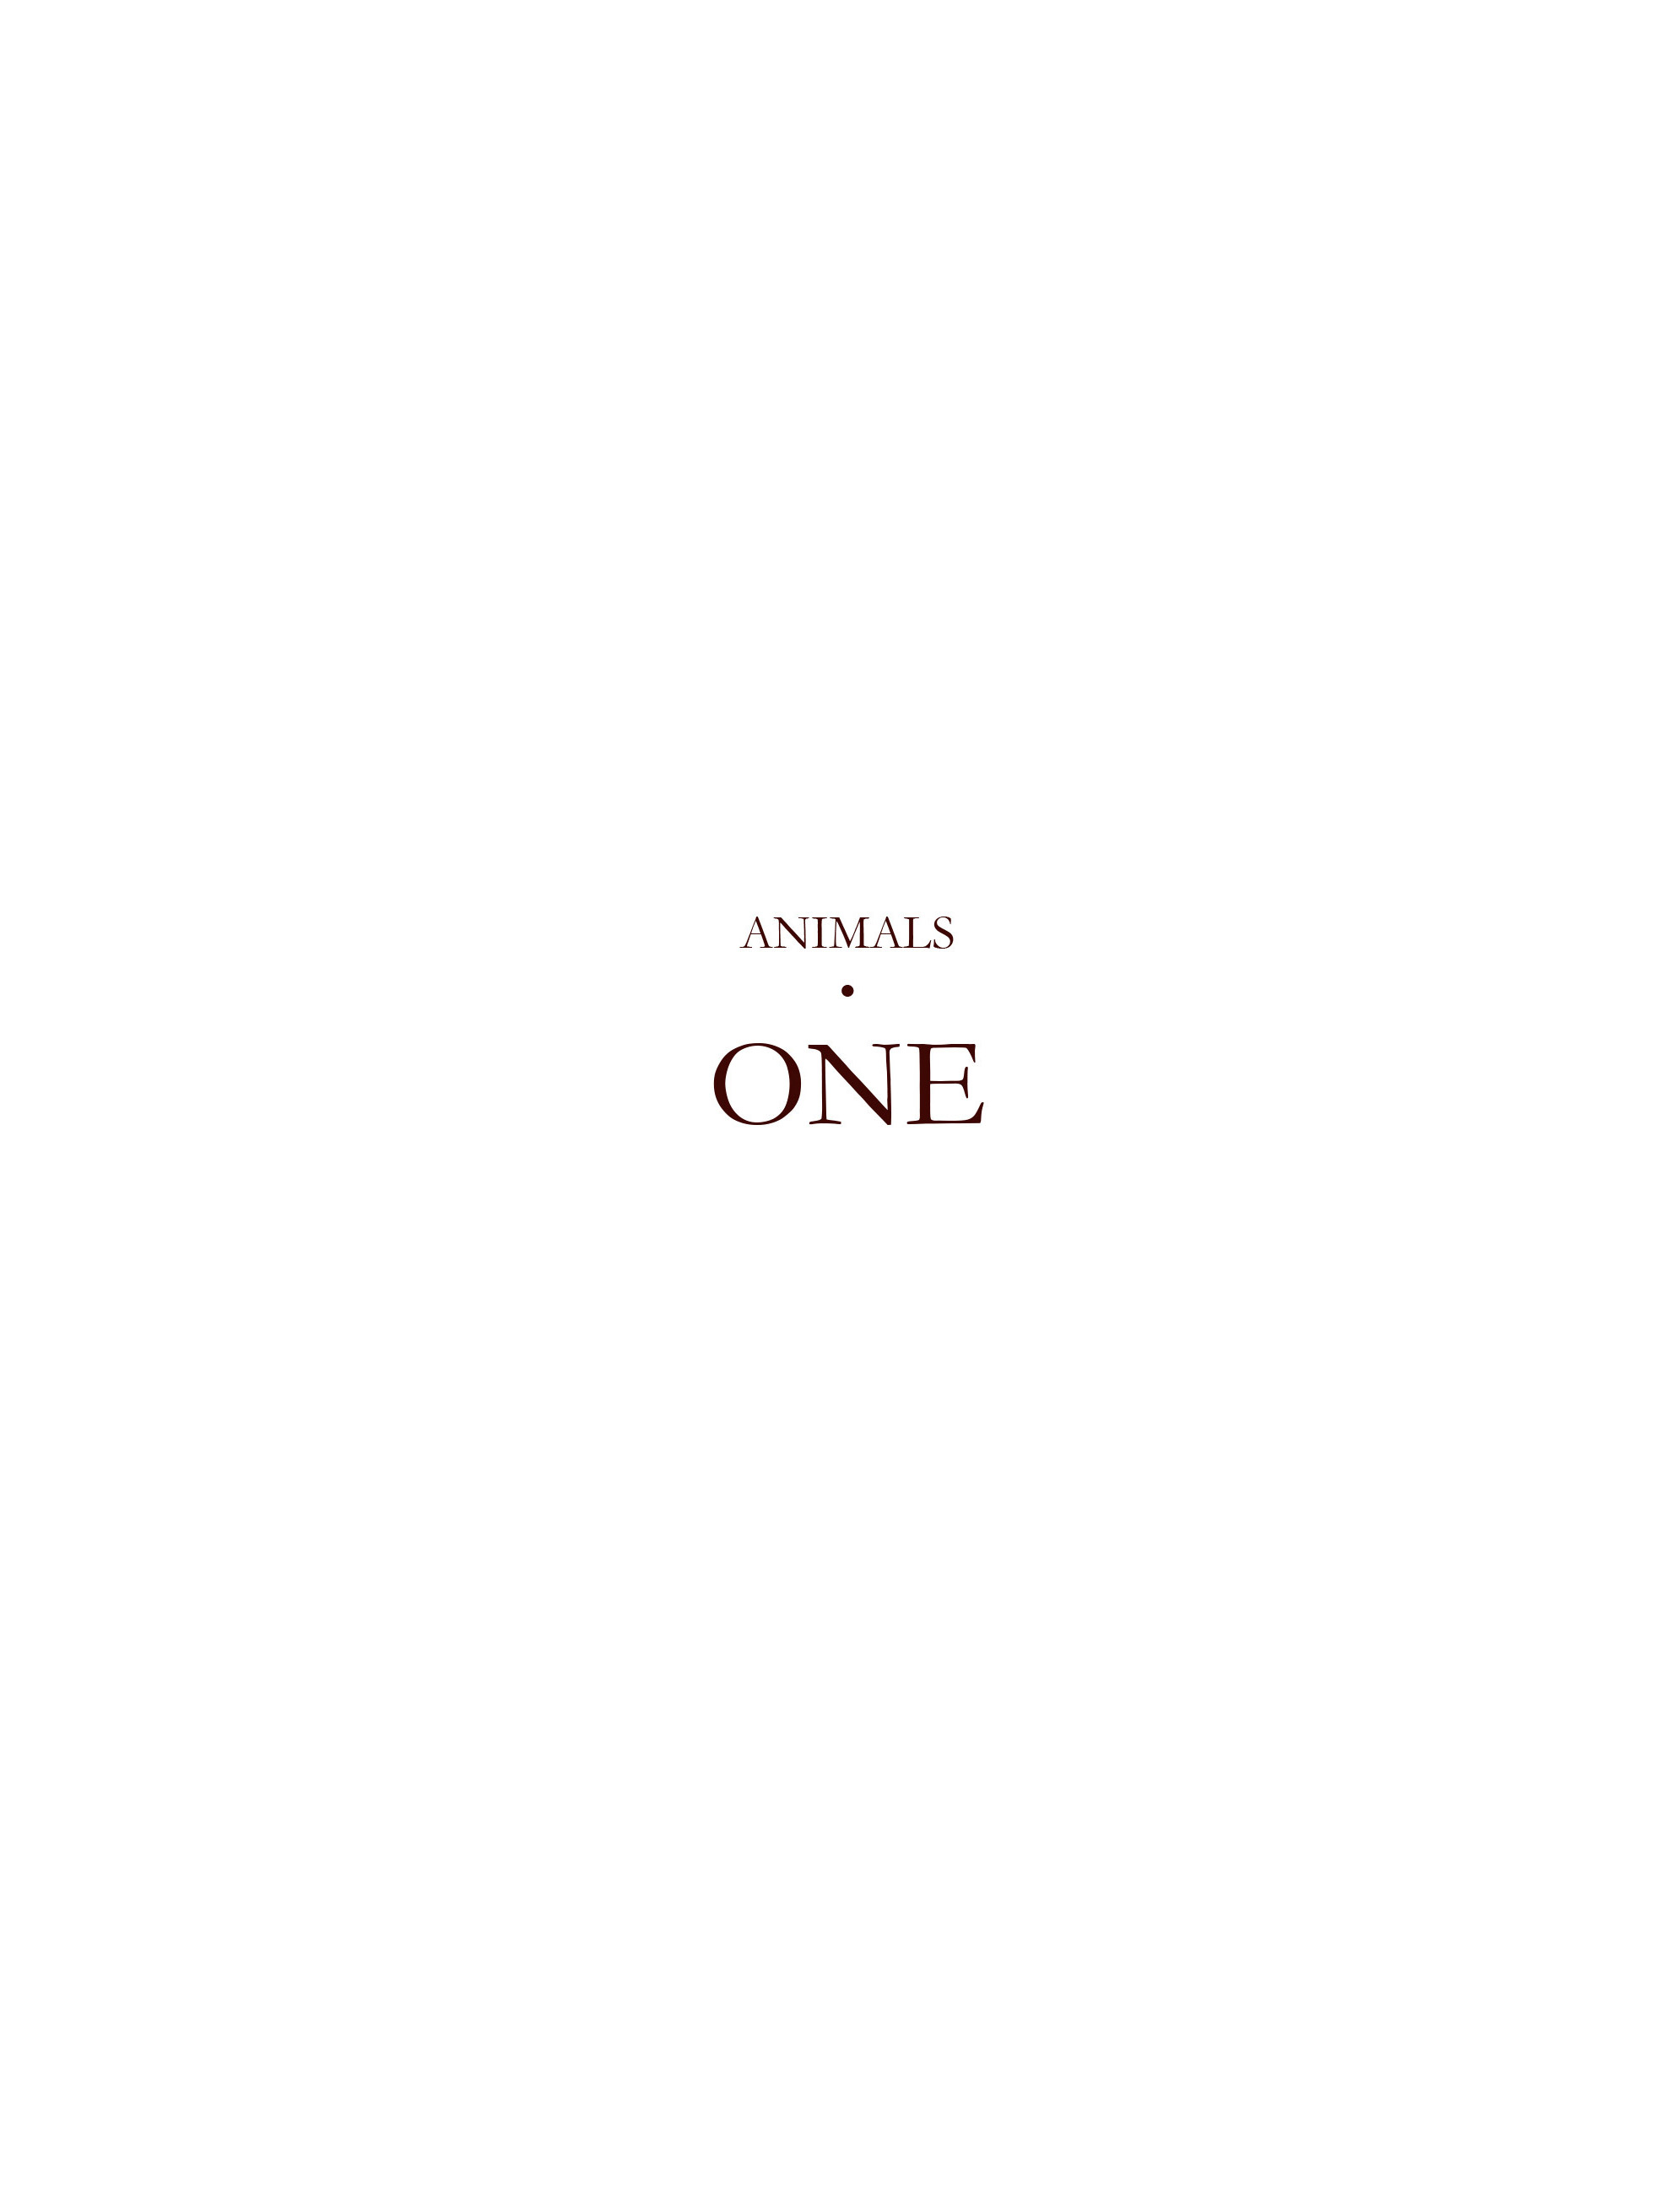 Read online Animals comic -  Issue #1 - 4